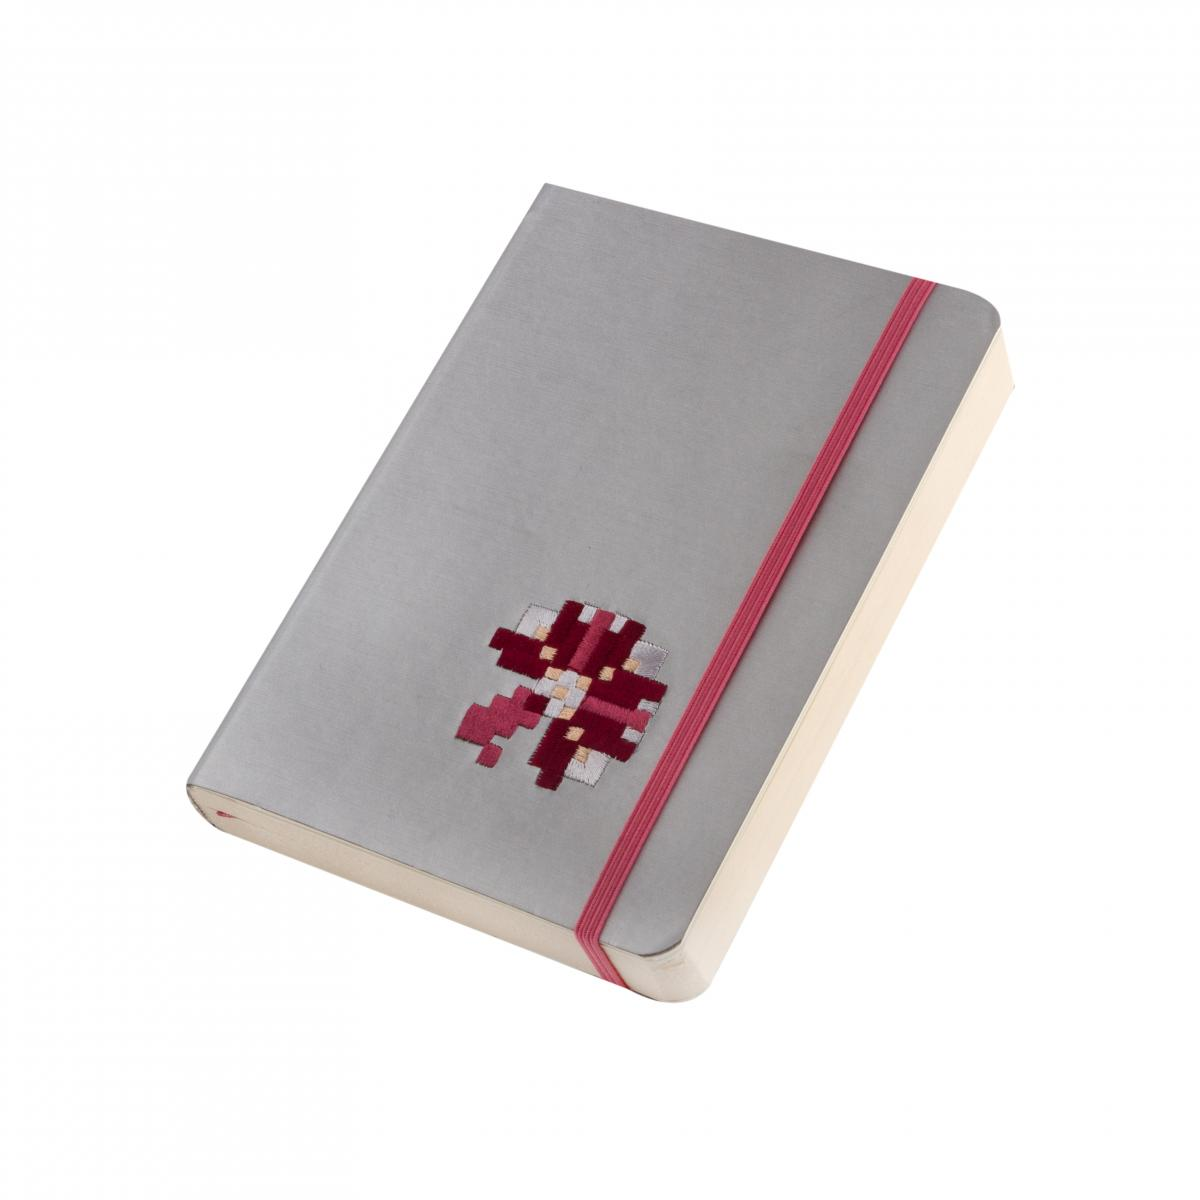 Eco-leather notebook with embroidery Kachalochka, silver. Photo №2. | Narodnyi dim Ukraine